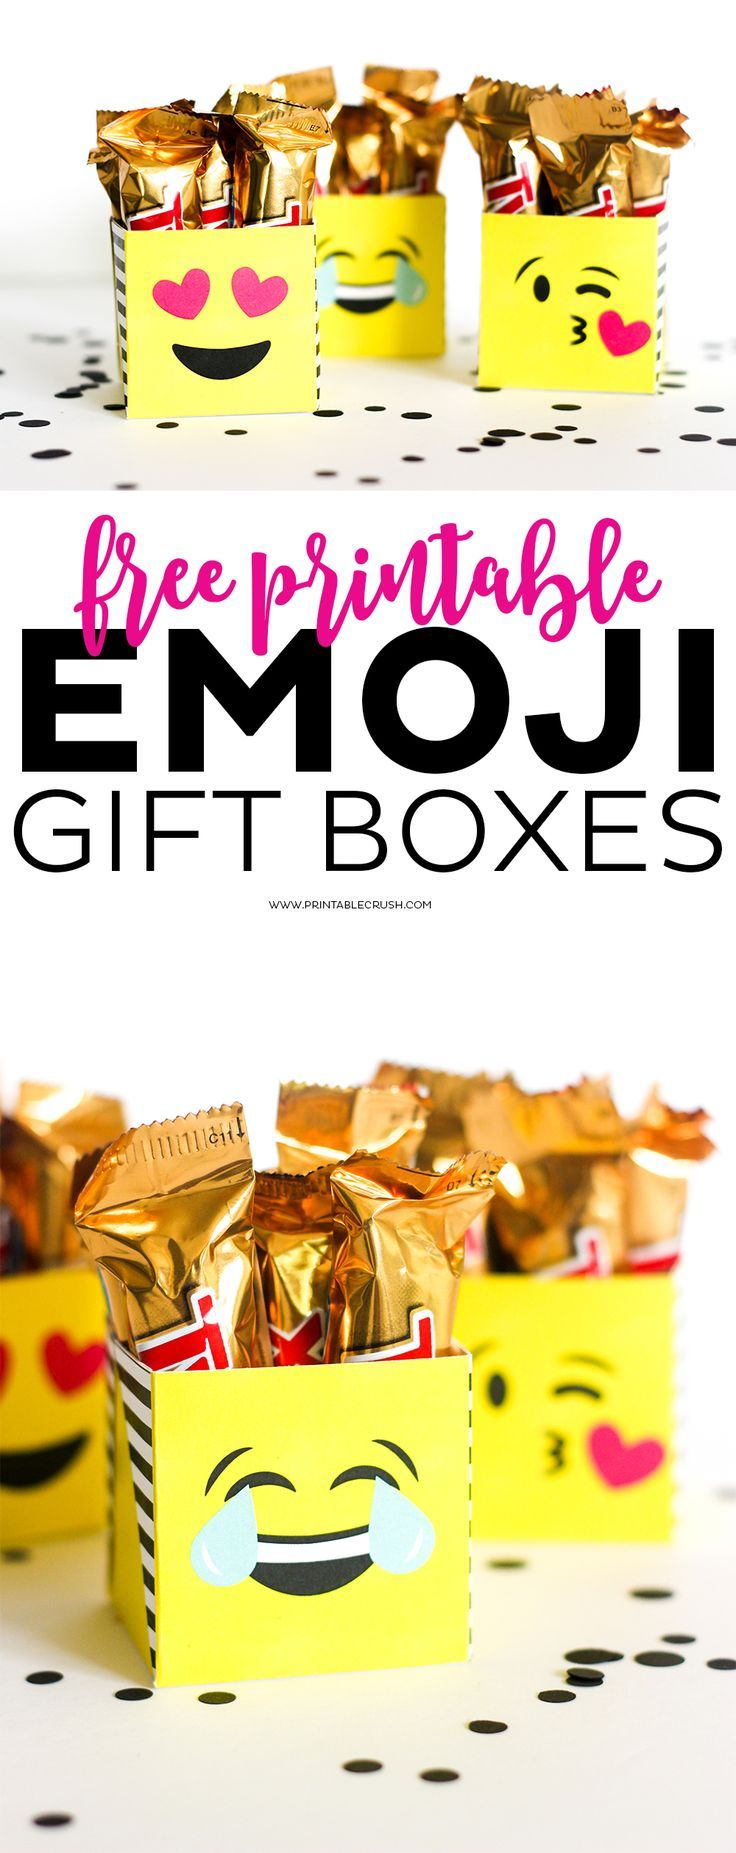 Download these free printable emoji boxes for the gift or party download these free printable emoji boxes for the gift or party decoration i negle Image collections